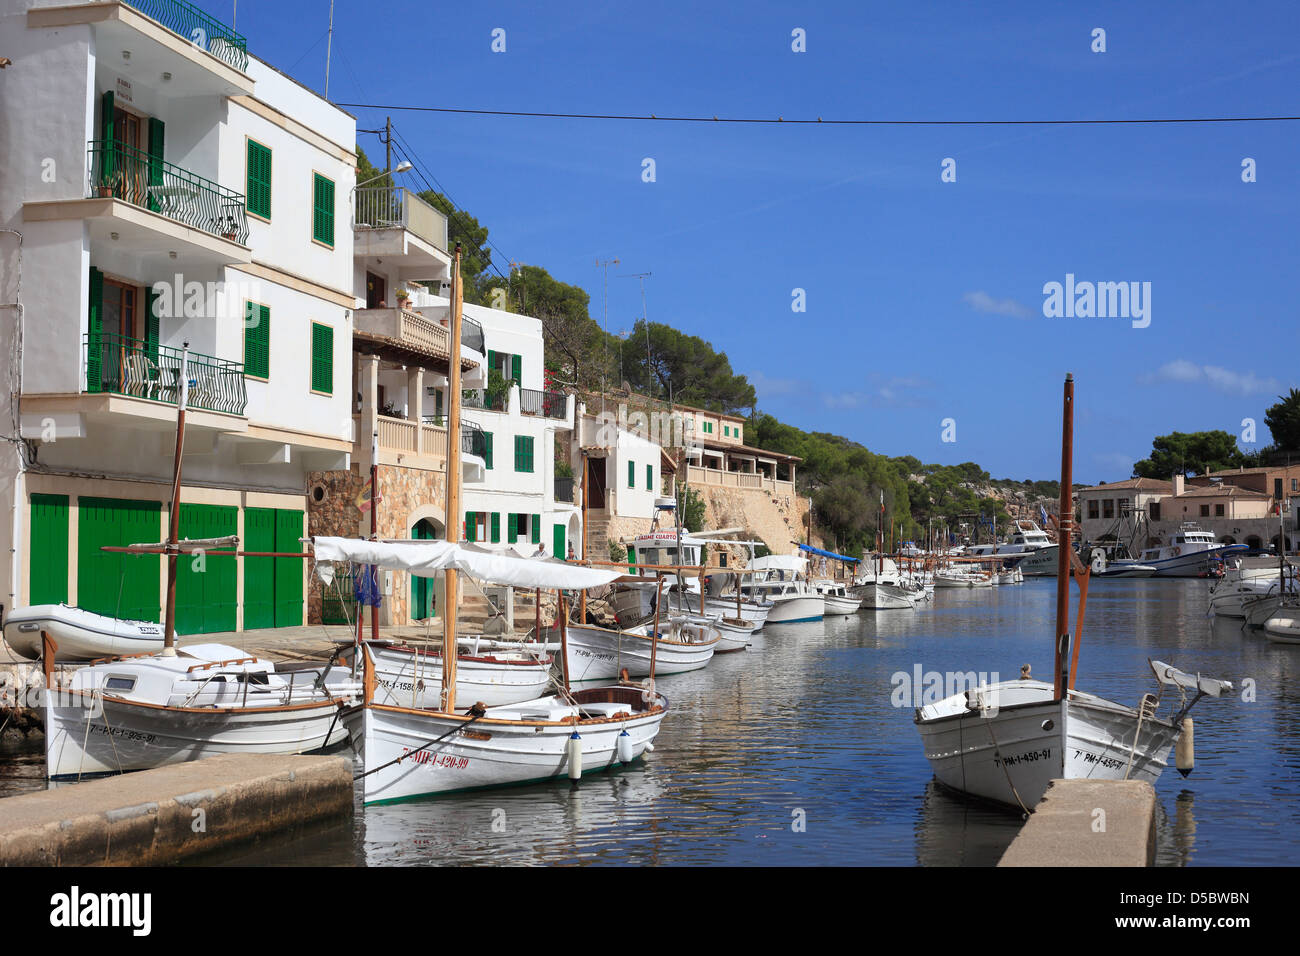 Cala Figuera Spain  City pictures : Cala Figuera, Spain, The Fishing Village Of Cala Figuera In Mallorca ...